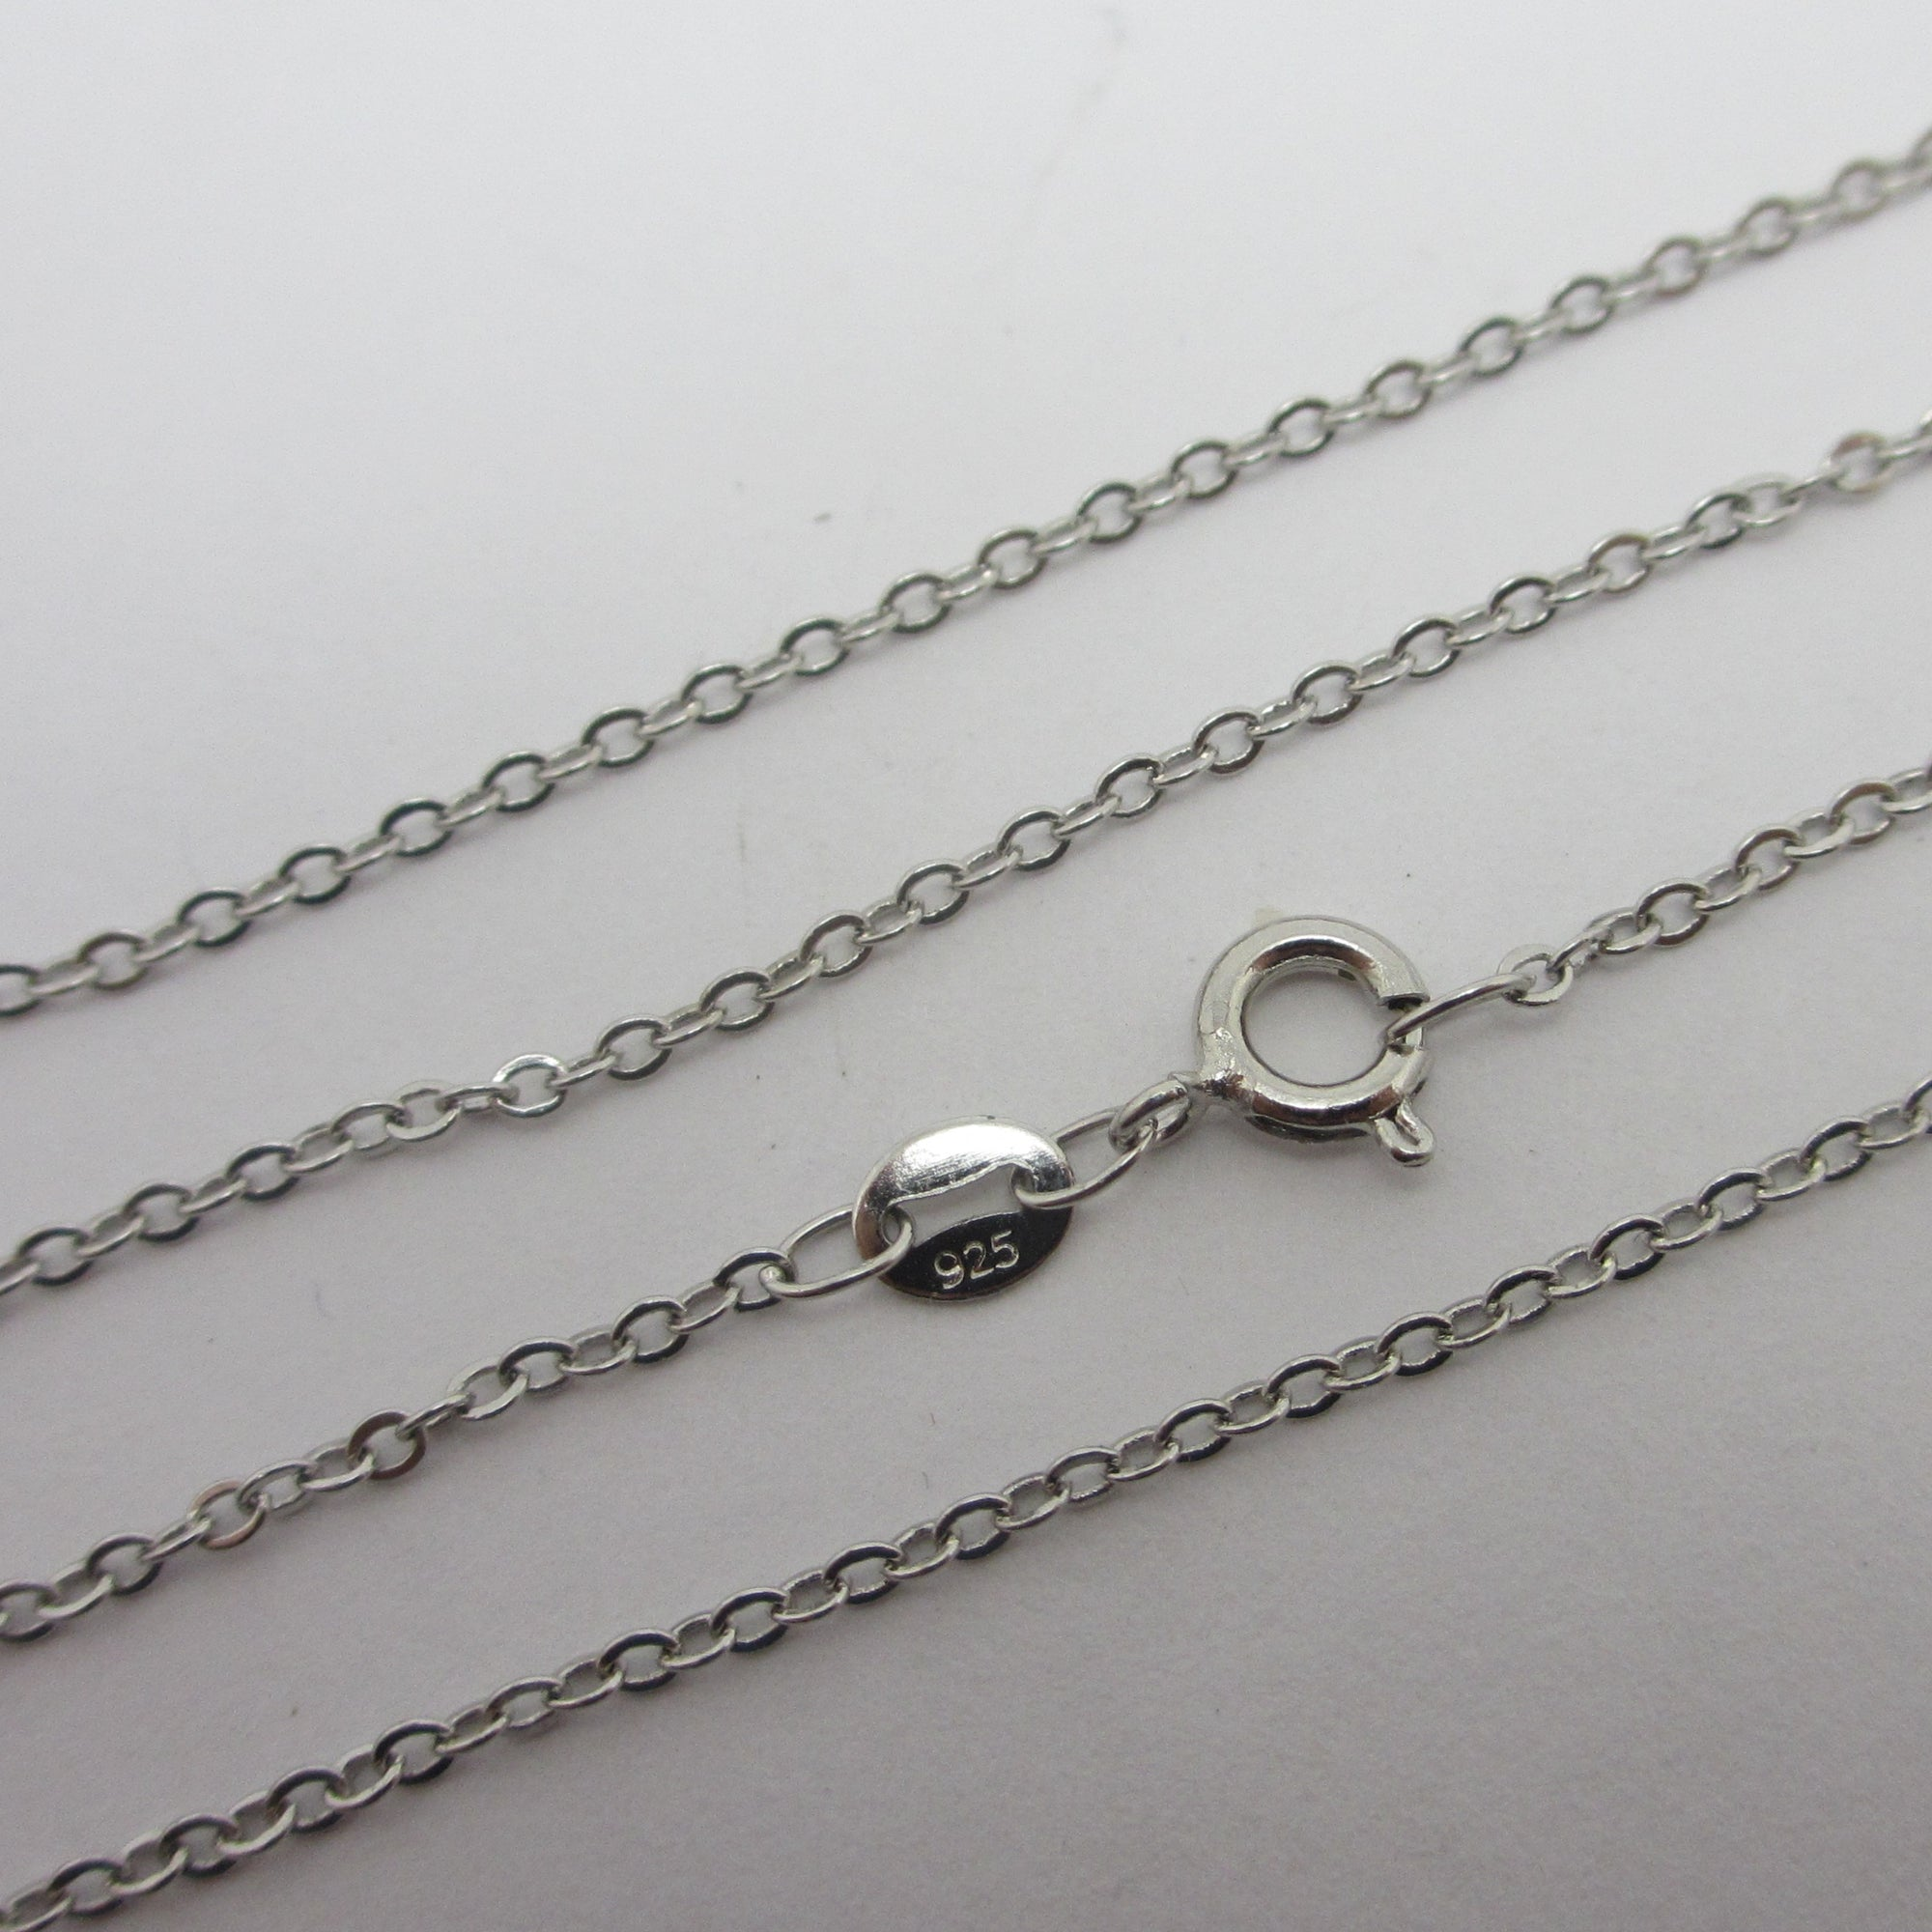 "Cable Link Sterling Silver Chain Necklace 45.3cm / 17.8"" Vintage c1980"